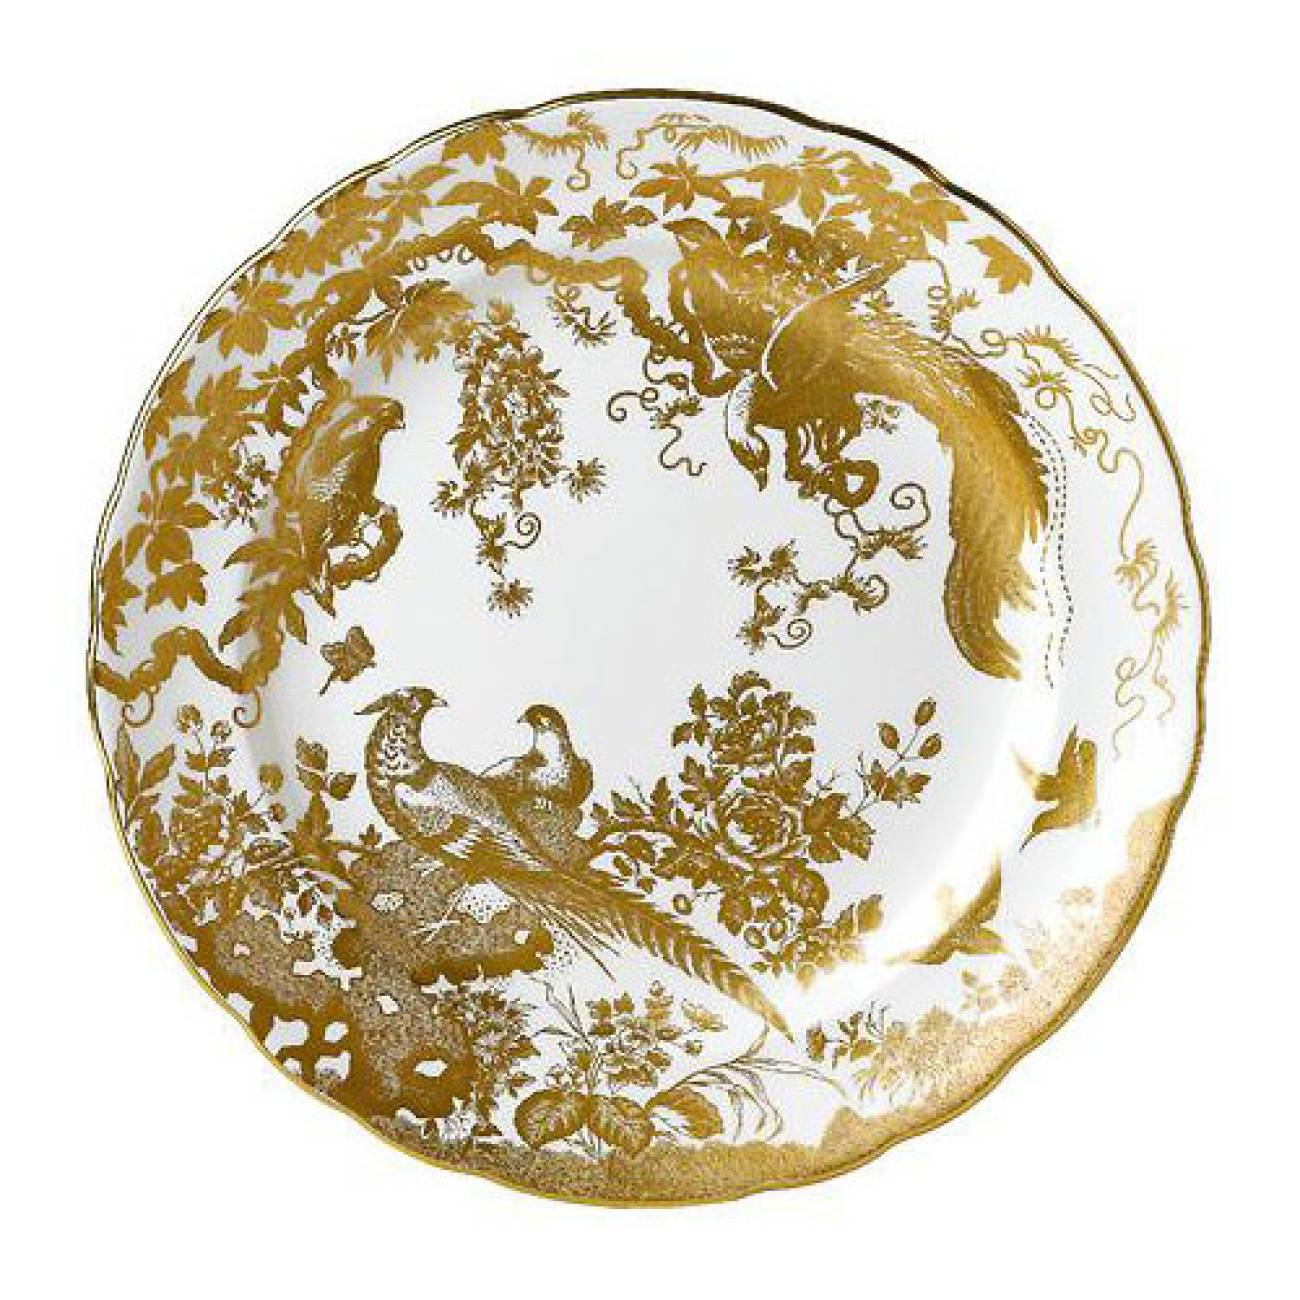 Royal Crown Derby Gold Aves Service Plate  sc 1 st  Michael C. Fina & Royal Crown Derby Gold Aves Service Plate - Michael C. Fina